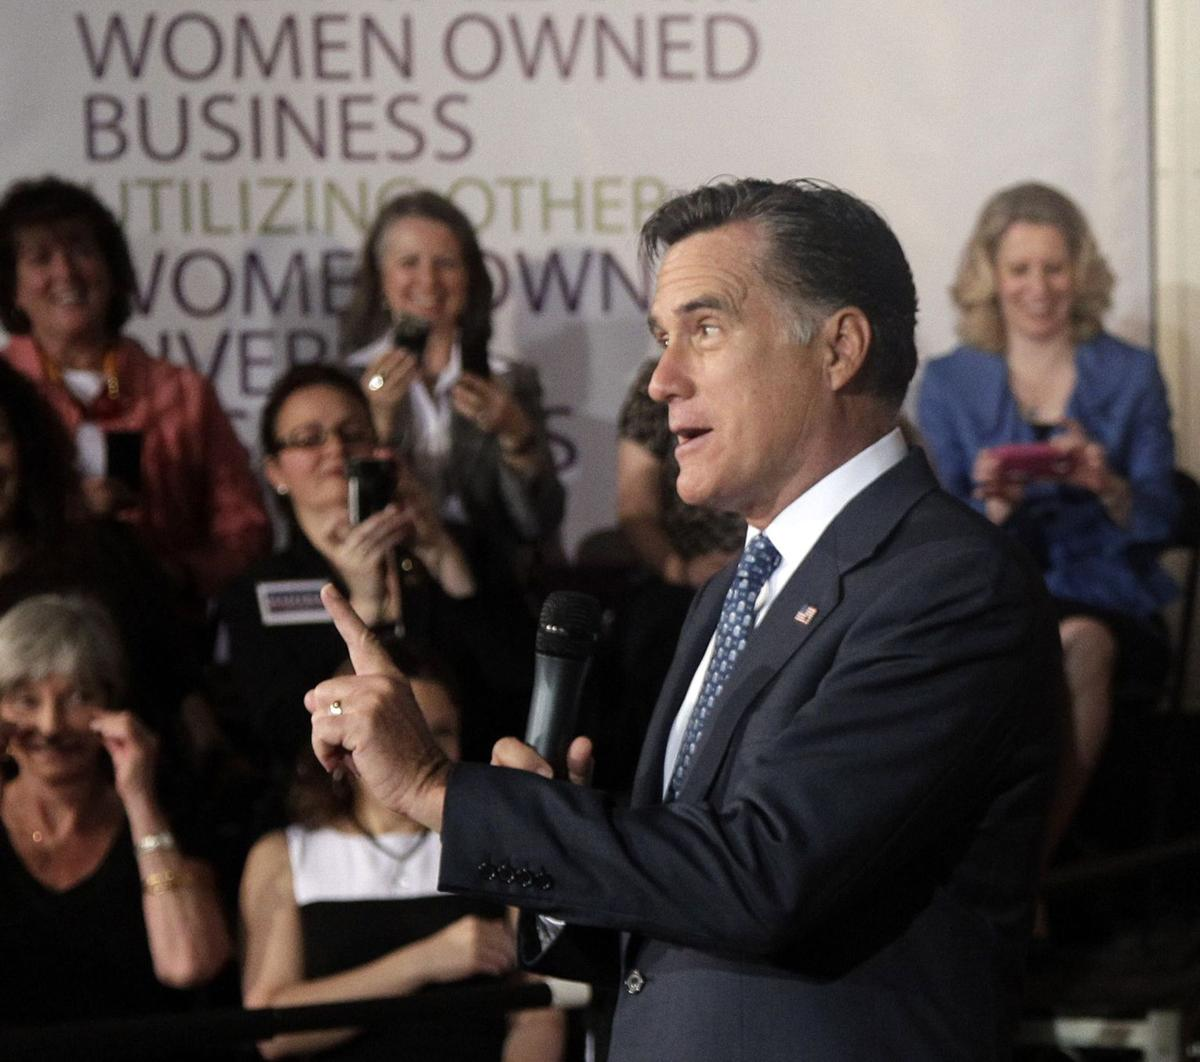 Romney wooing female voters